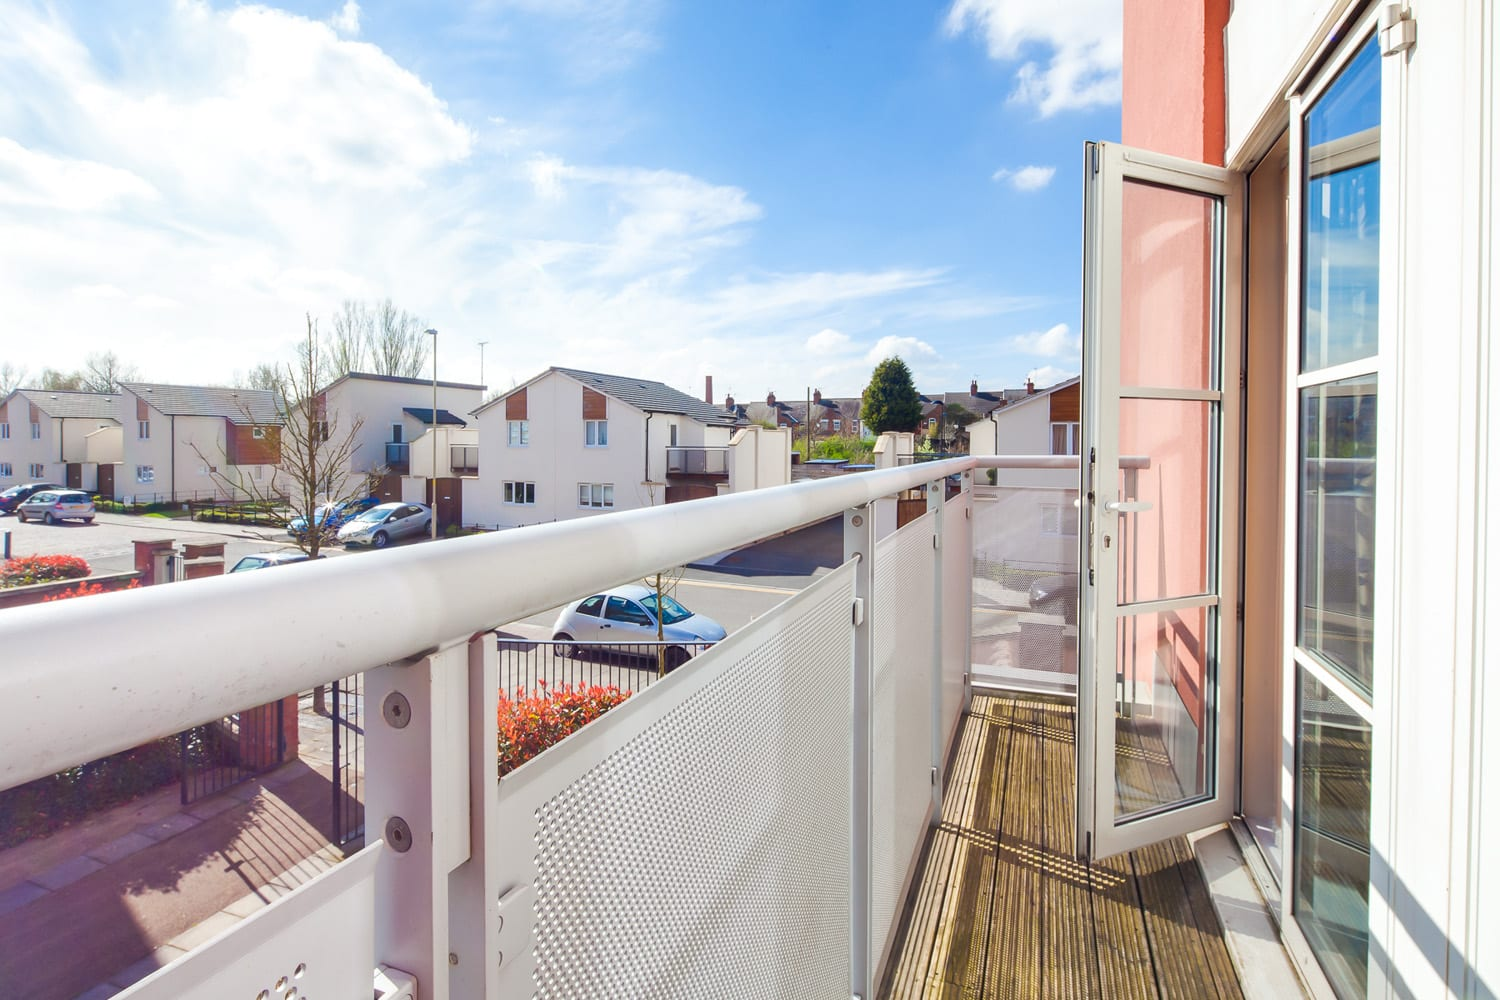 serviced apartments Leicester balcony